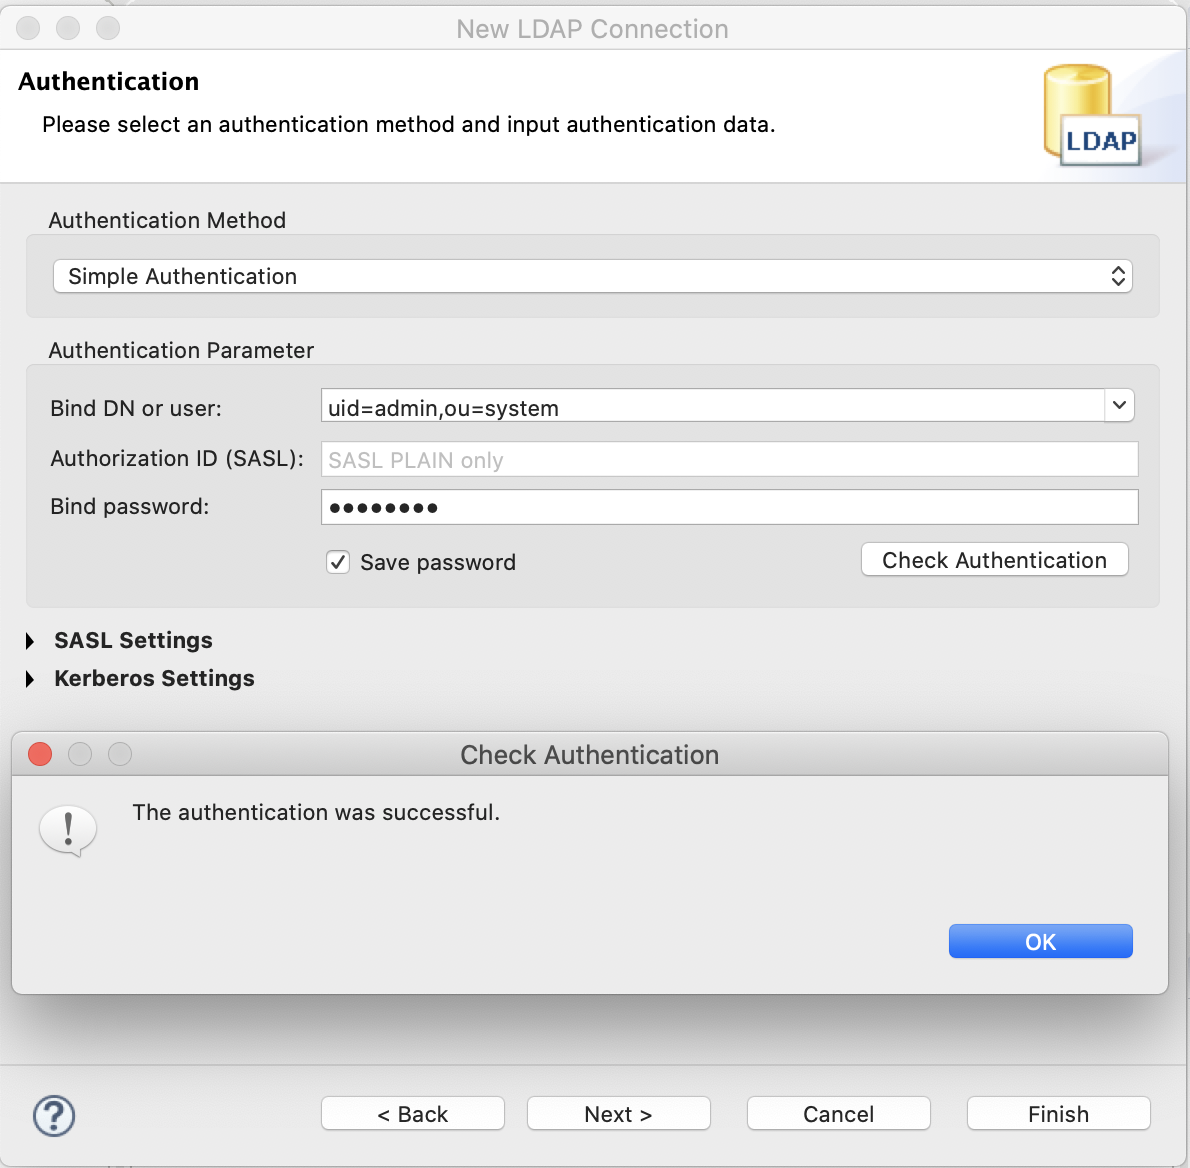 New LDAP Connection - Authenticaton